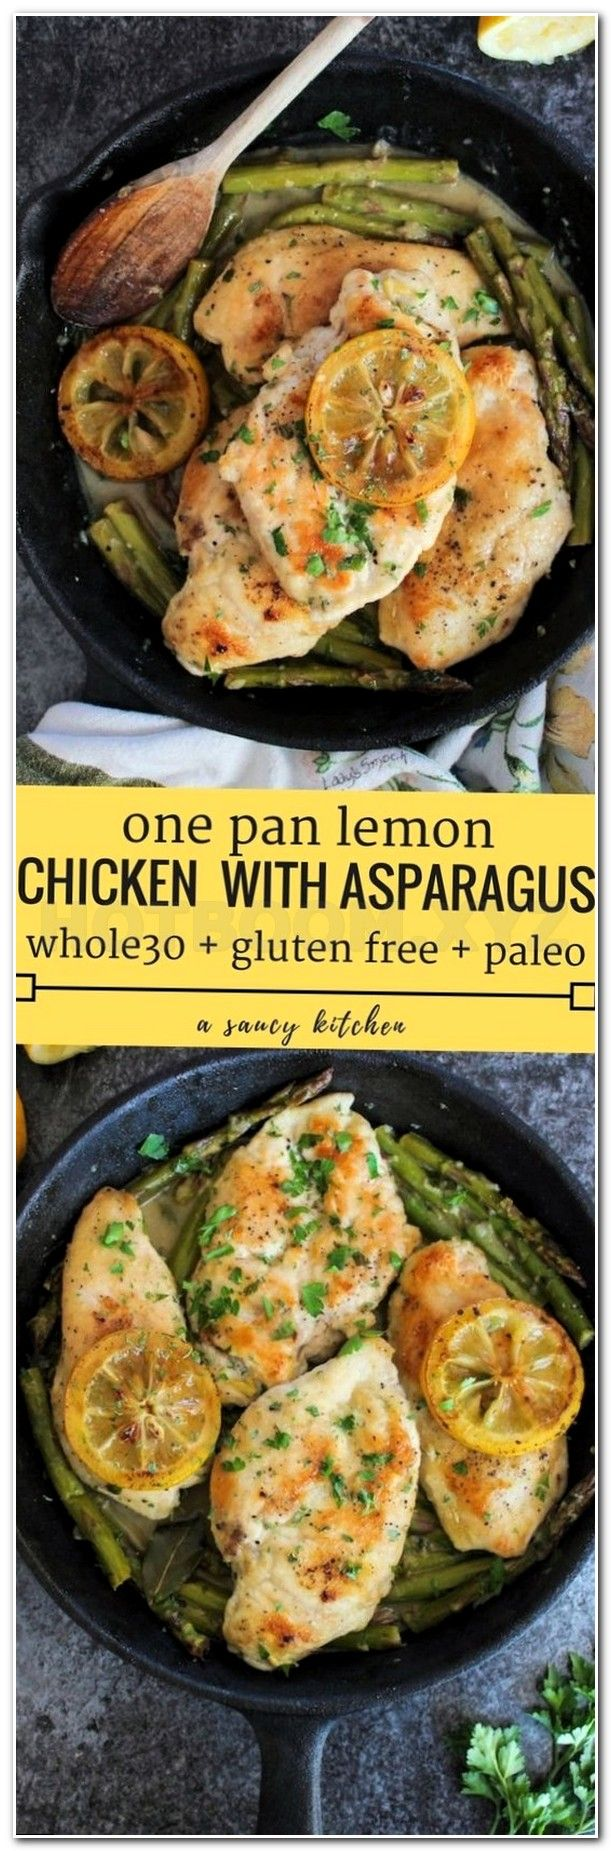 diet One Pan Lemon Chicken with Asparagus